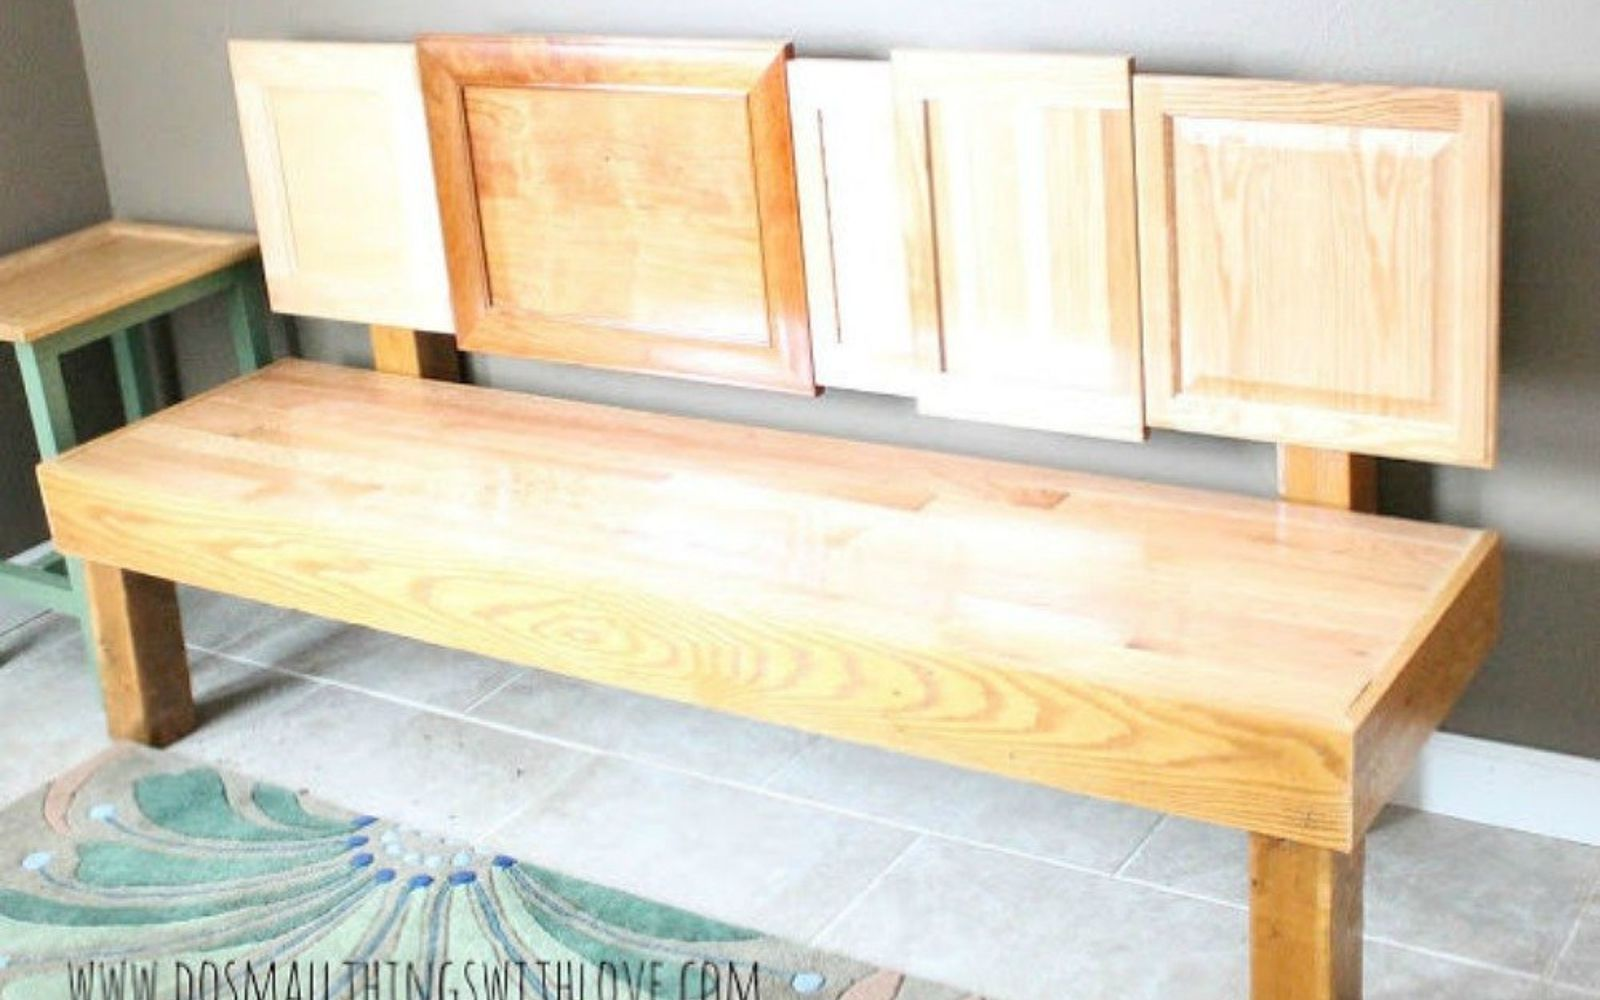 s rip off your cabinet doors for these brilliant upcycling ideas, Attach different ones into a unique bench